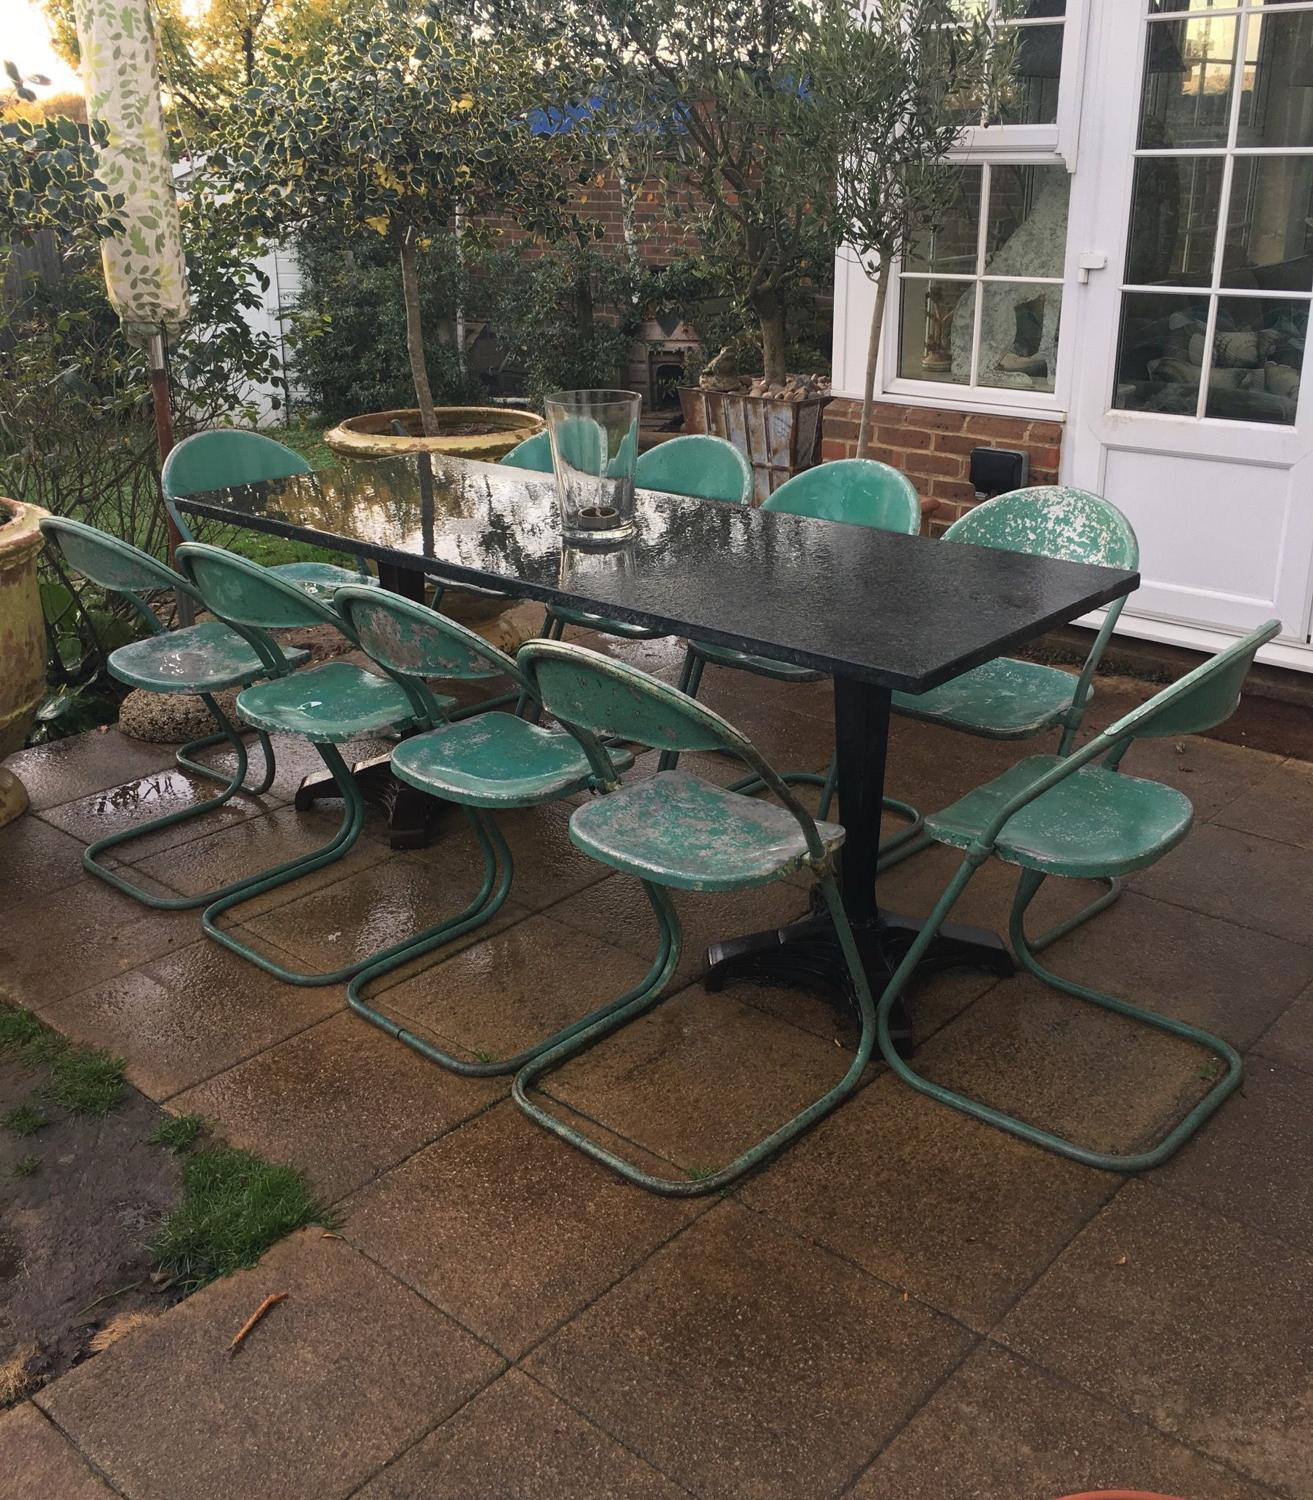 A set of 12 Aluminium cafe chairs